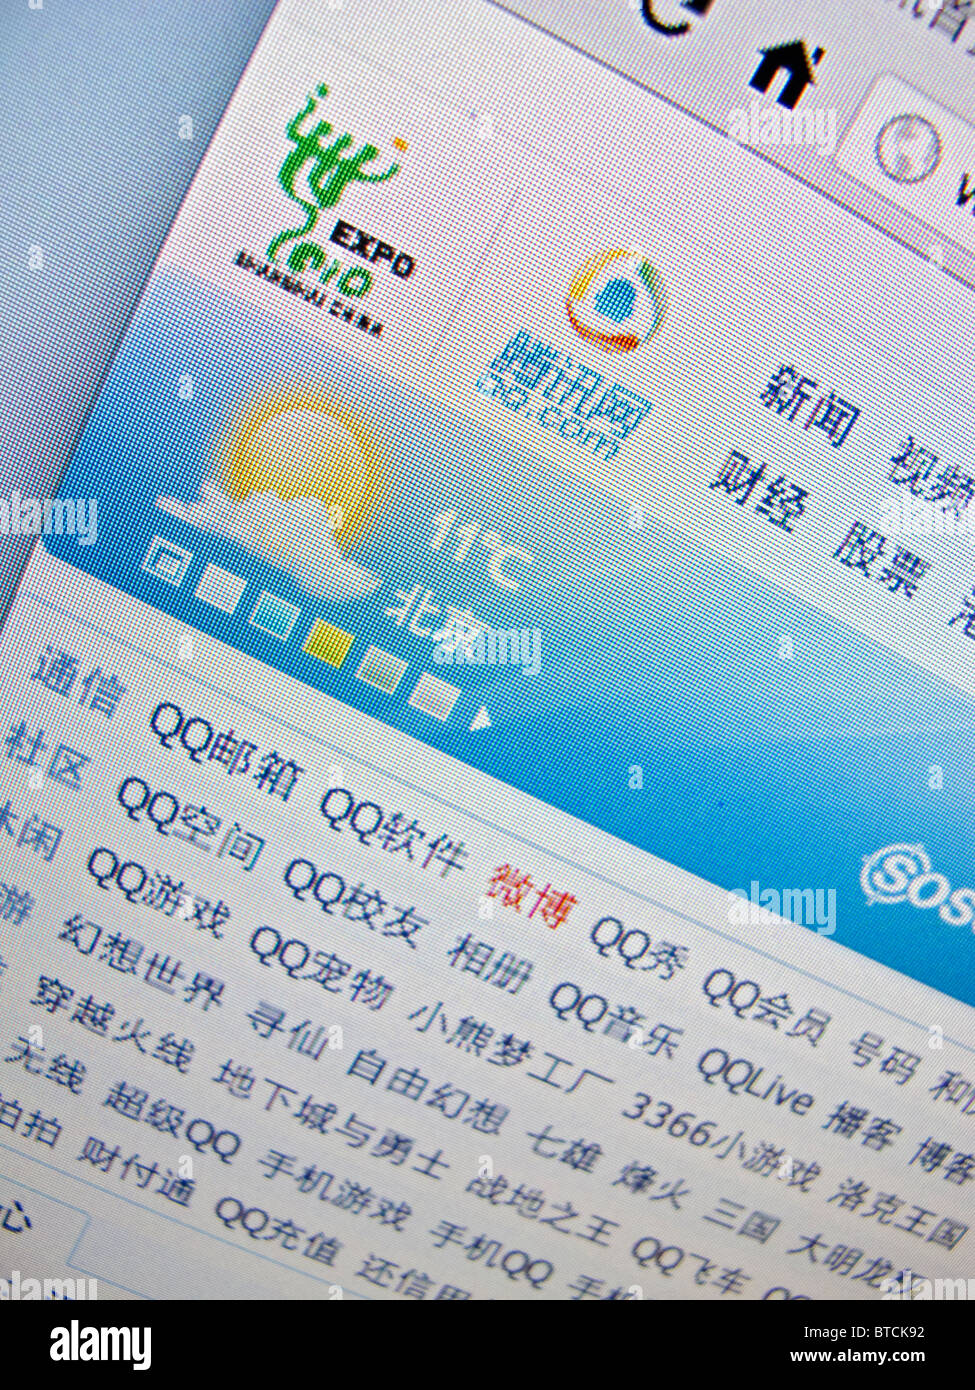 Detail of screenshot from QQ Chinese internet website homepage - Stock Image